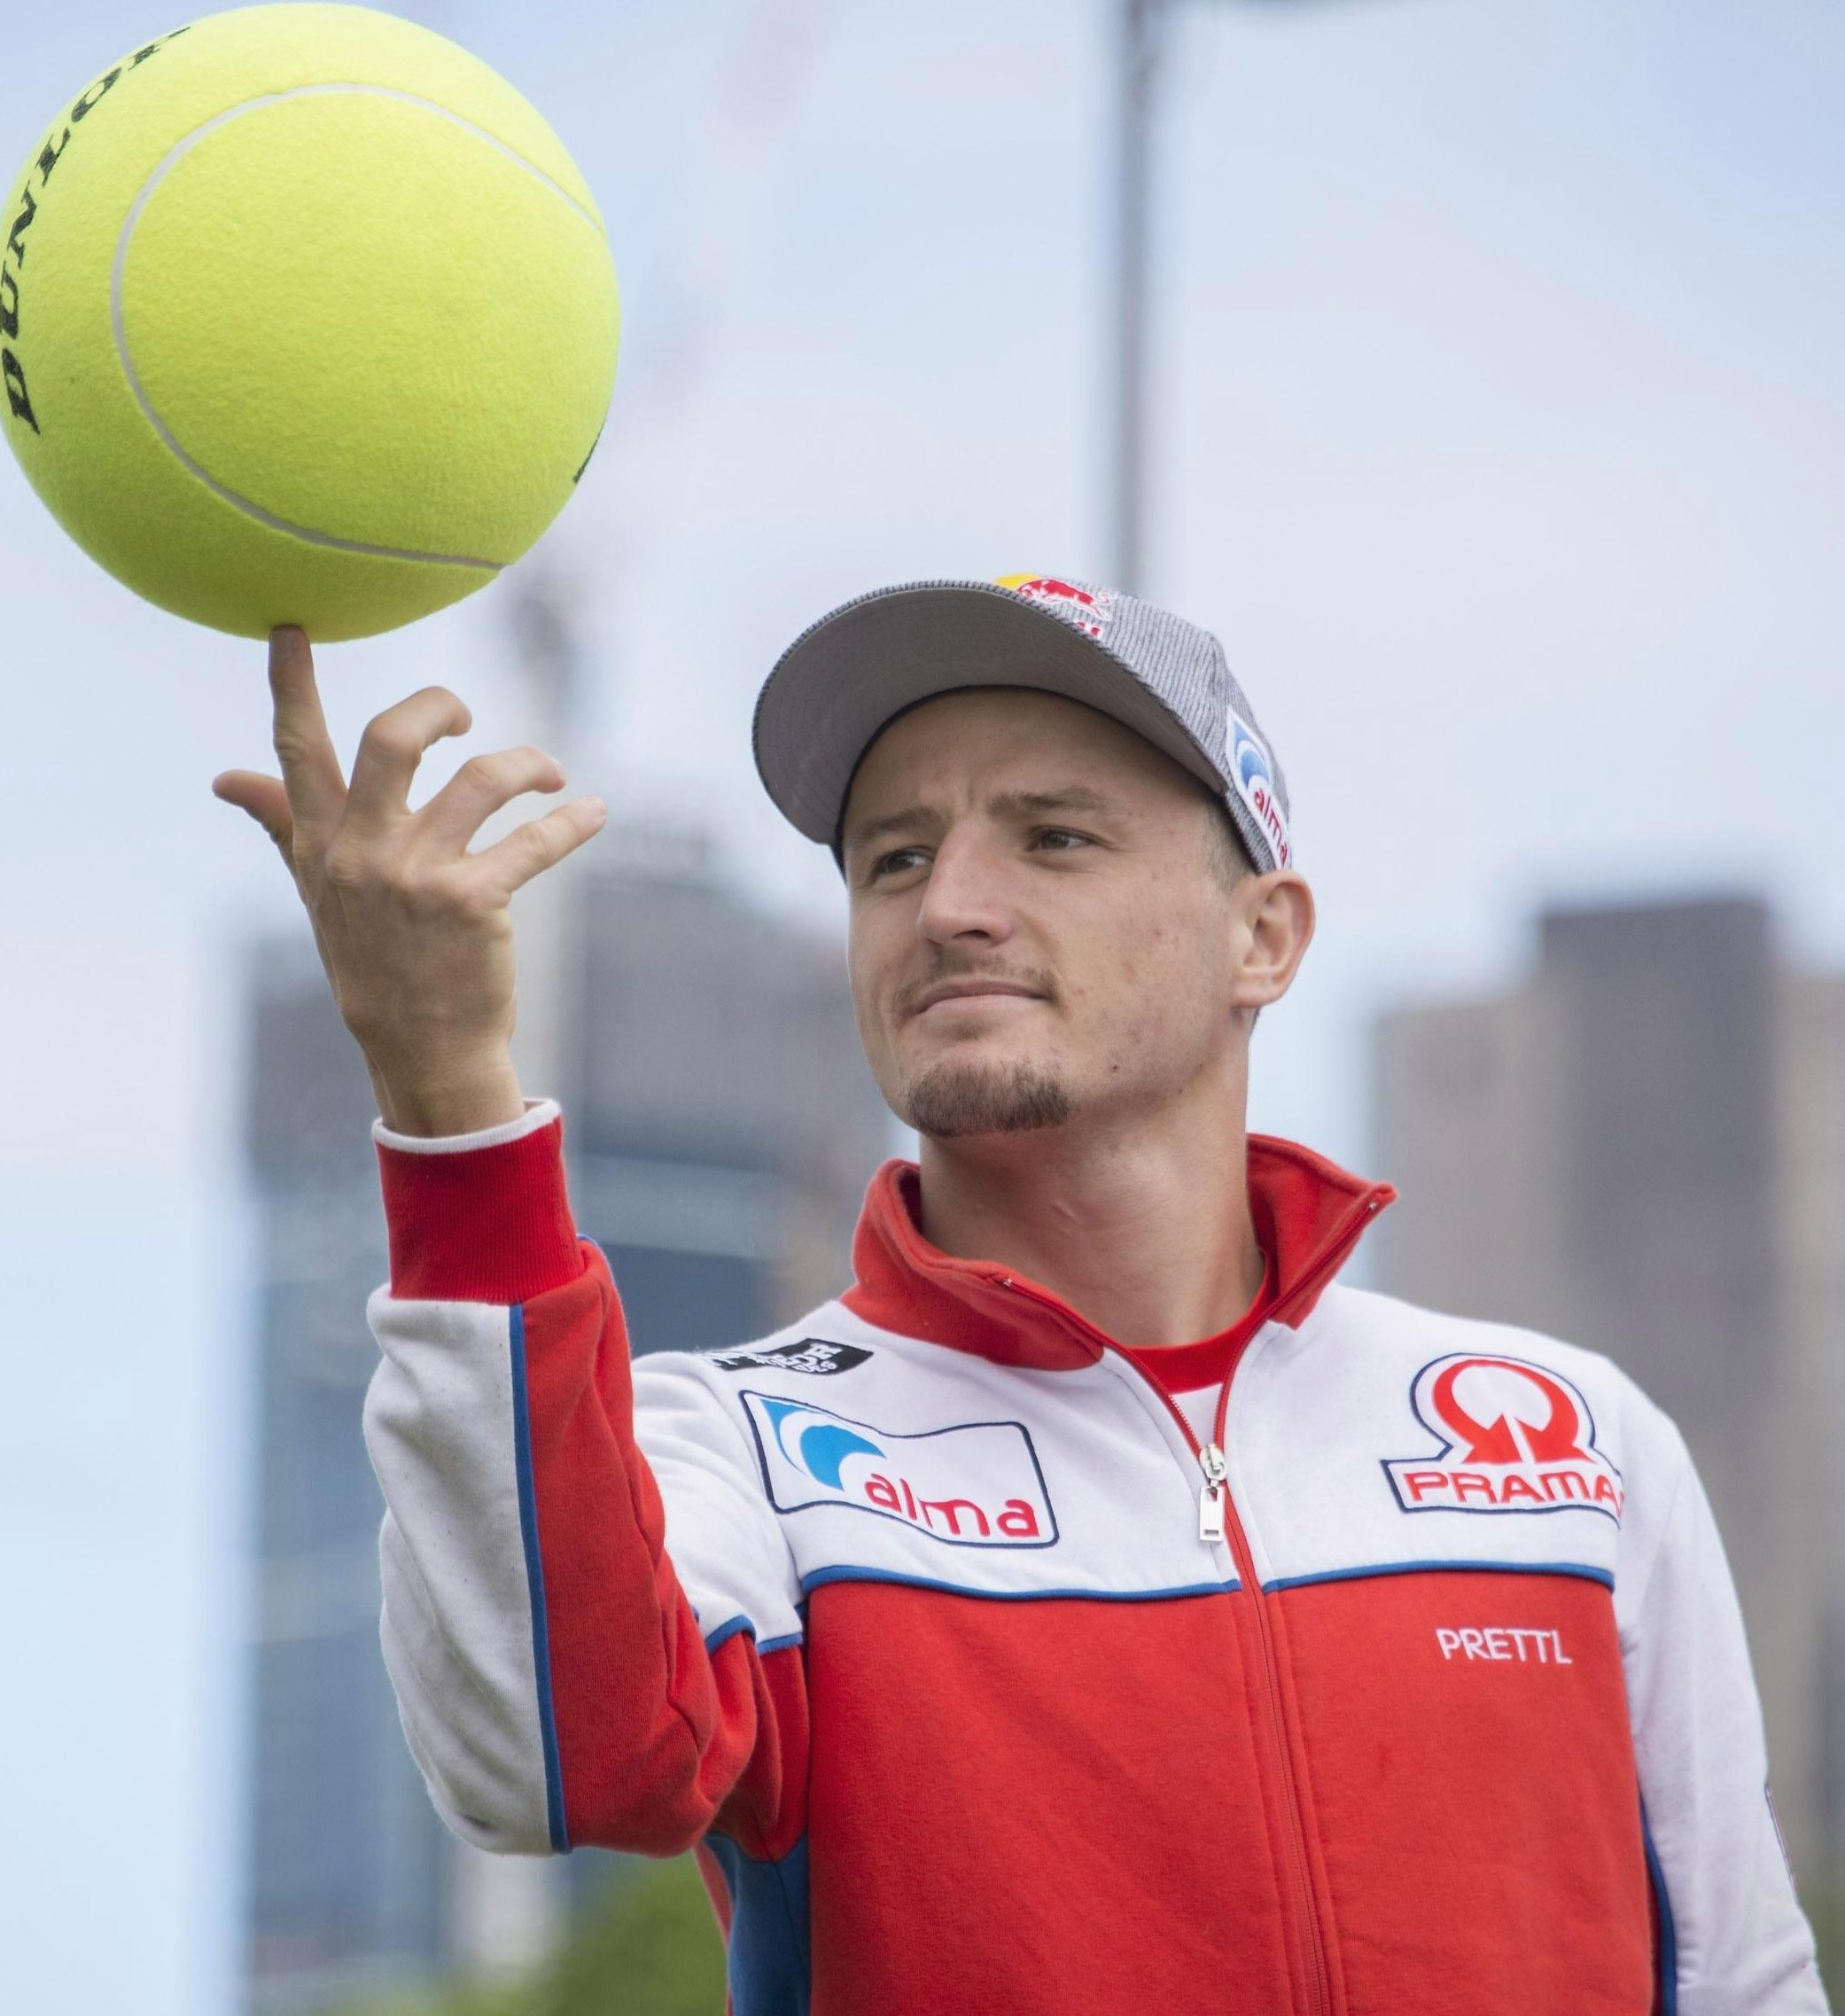 Aussie Jack Miller hopes to spin a home win on Sunday